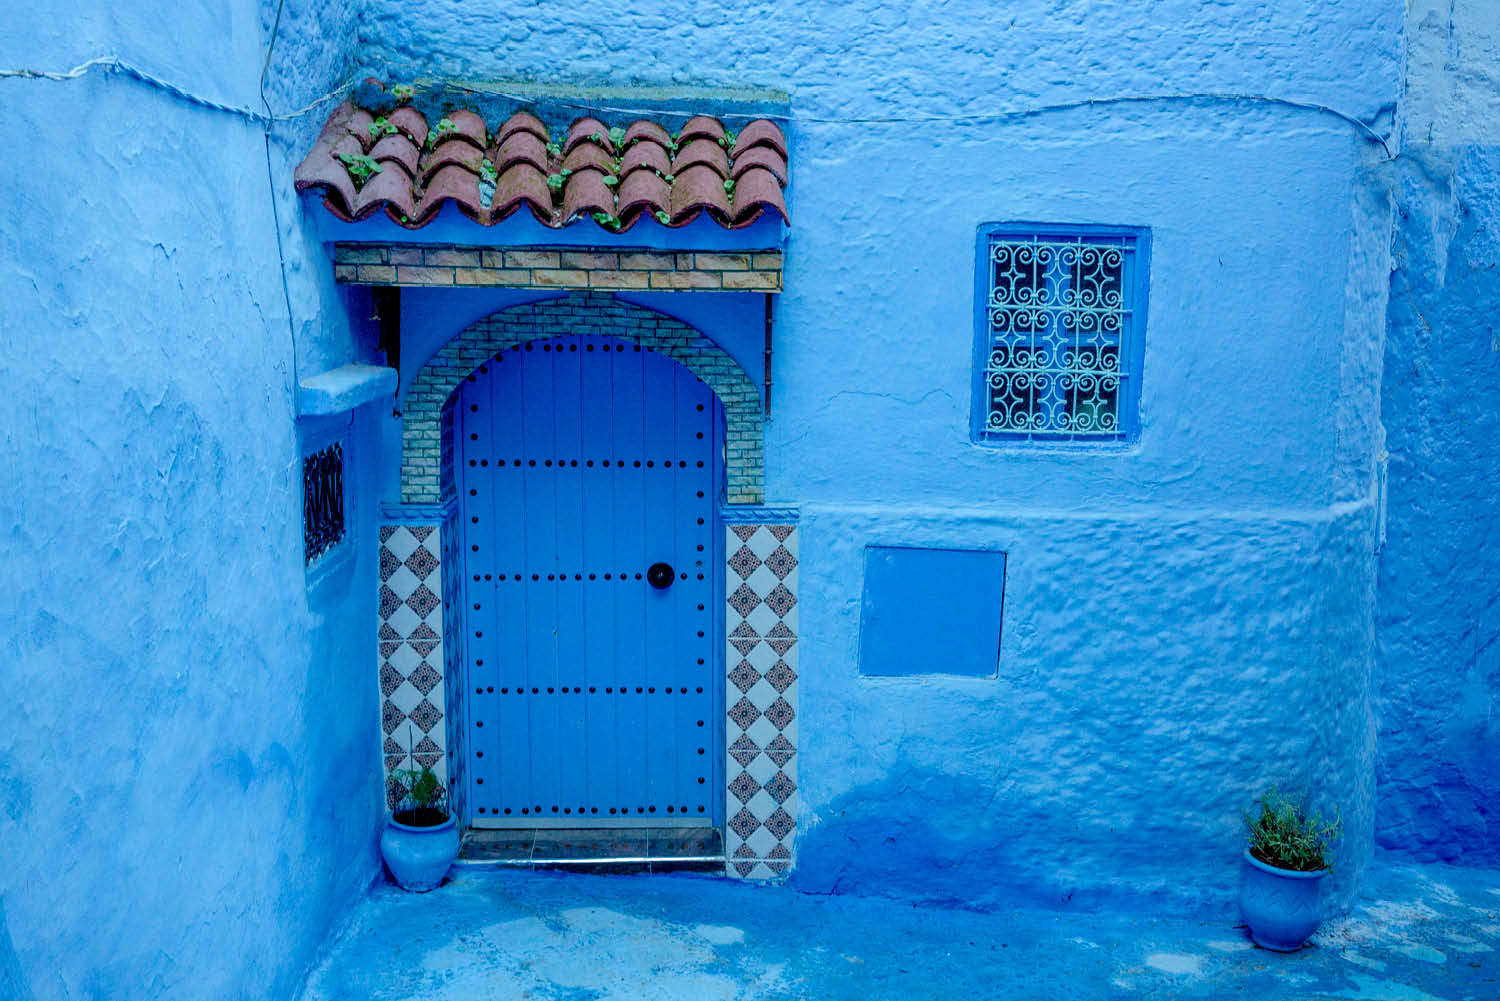 food culture Chefchaouen Morocco blue city god power